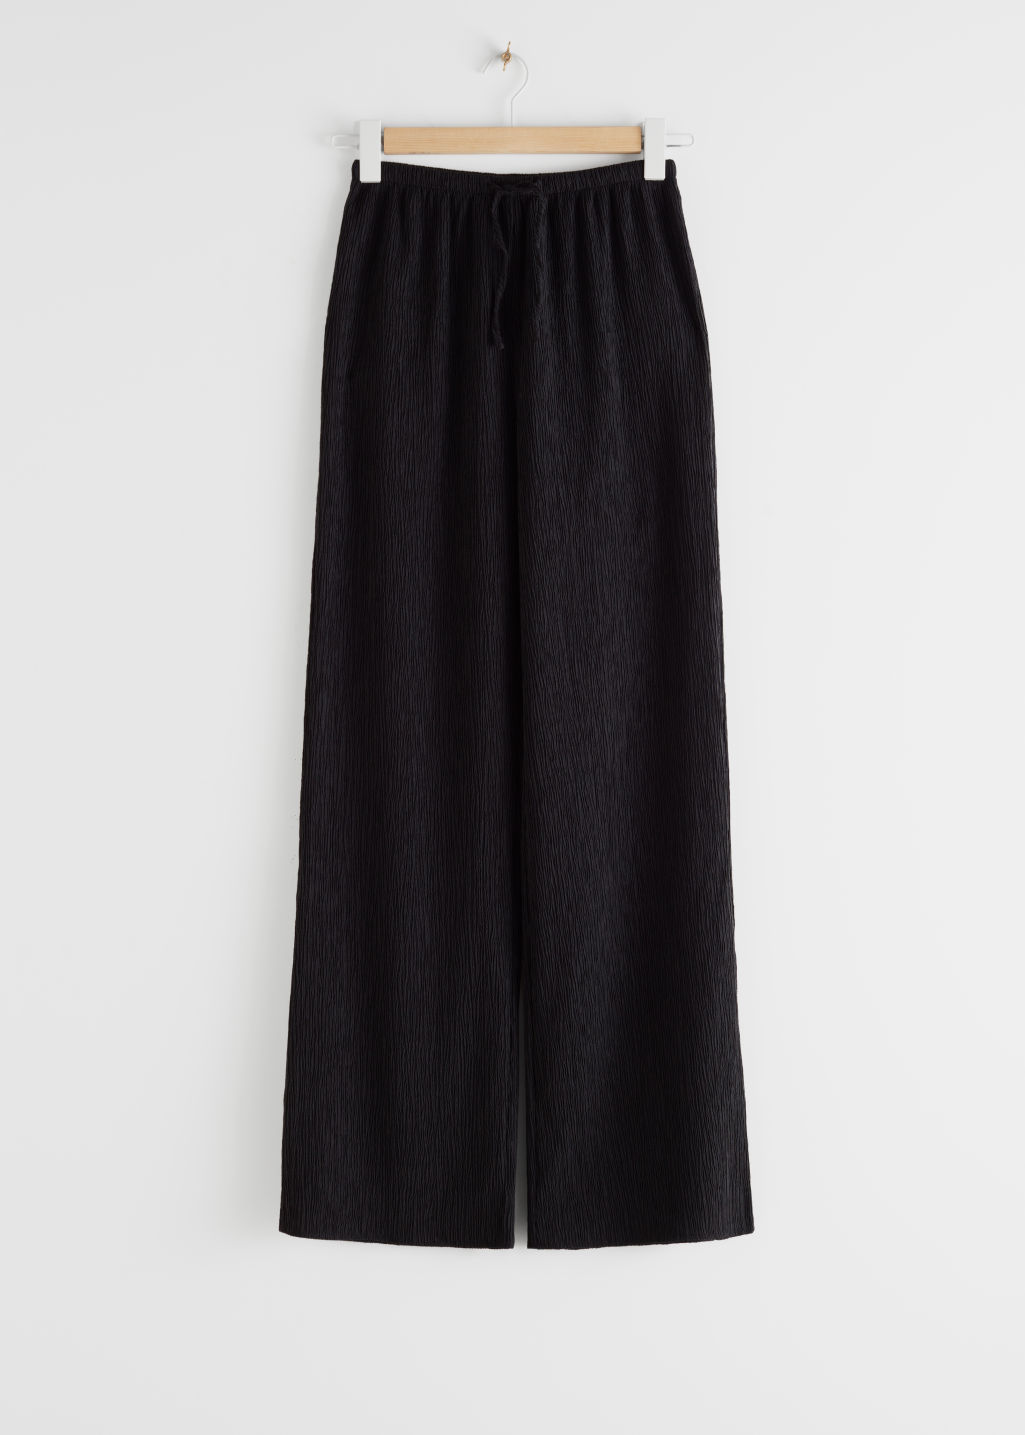 StillLife Front Image of Stories Lyocell Blend Drawstring Flared Trousers in Black